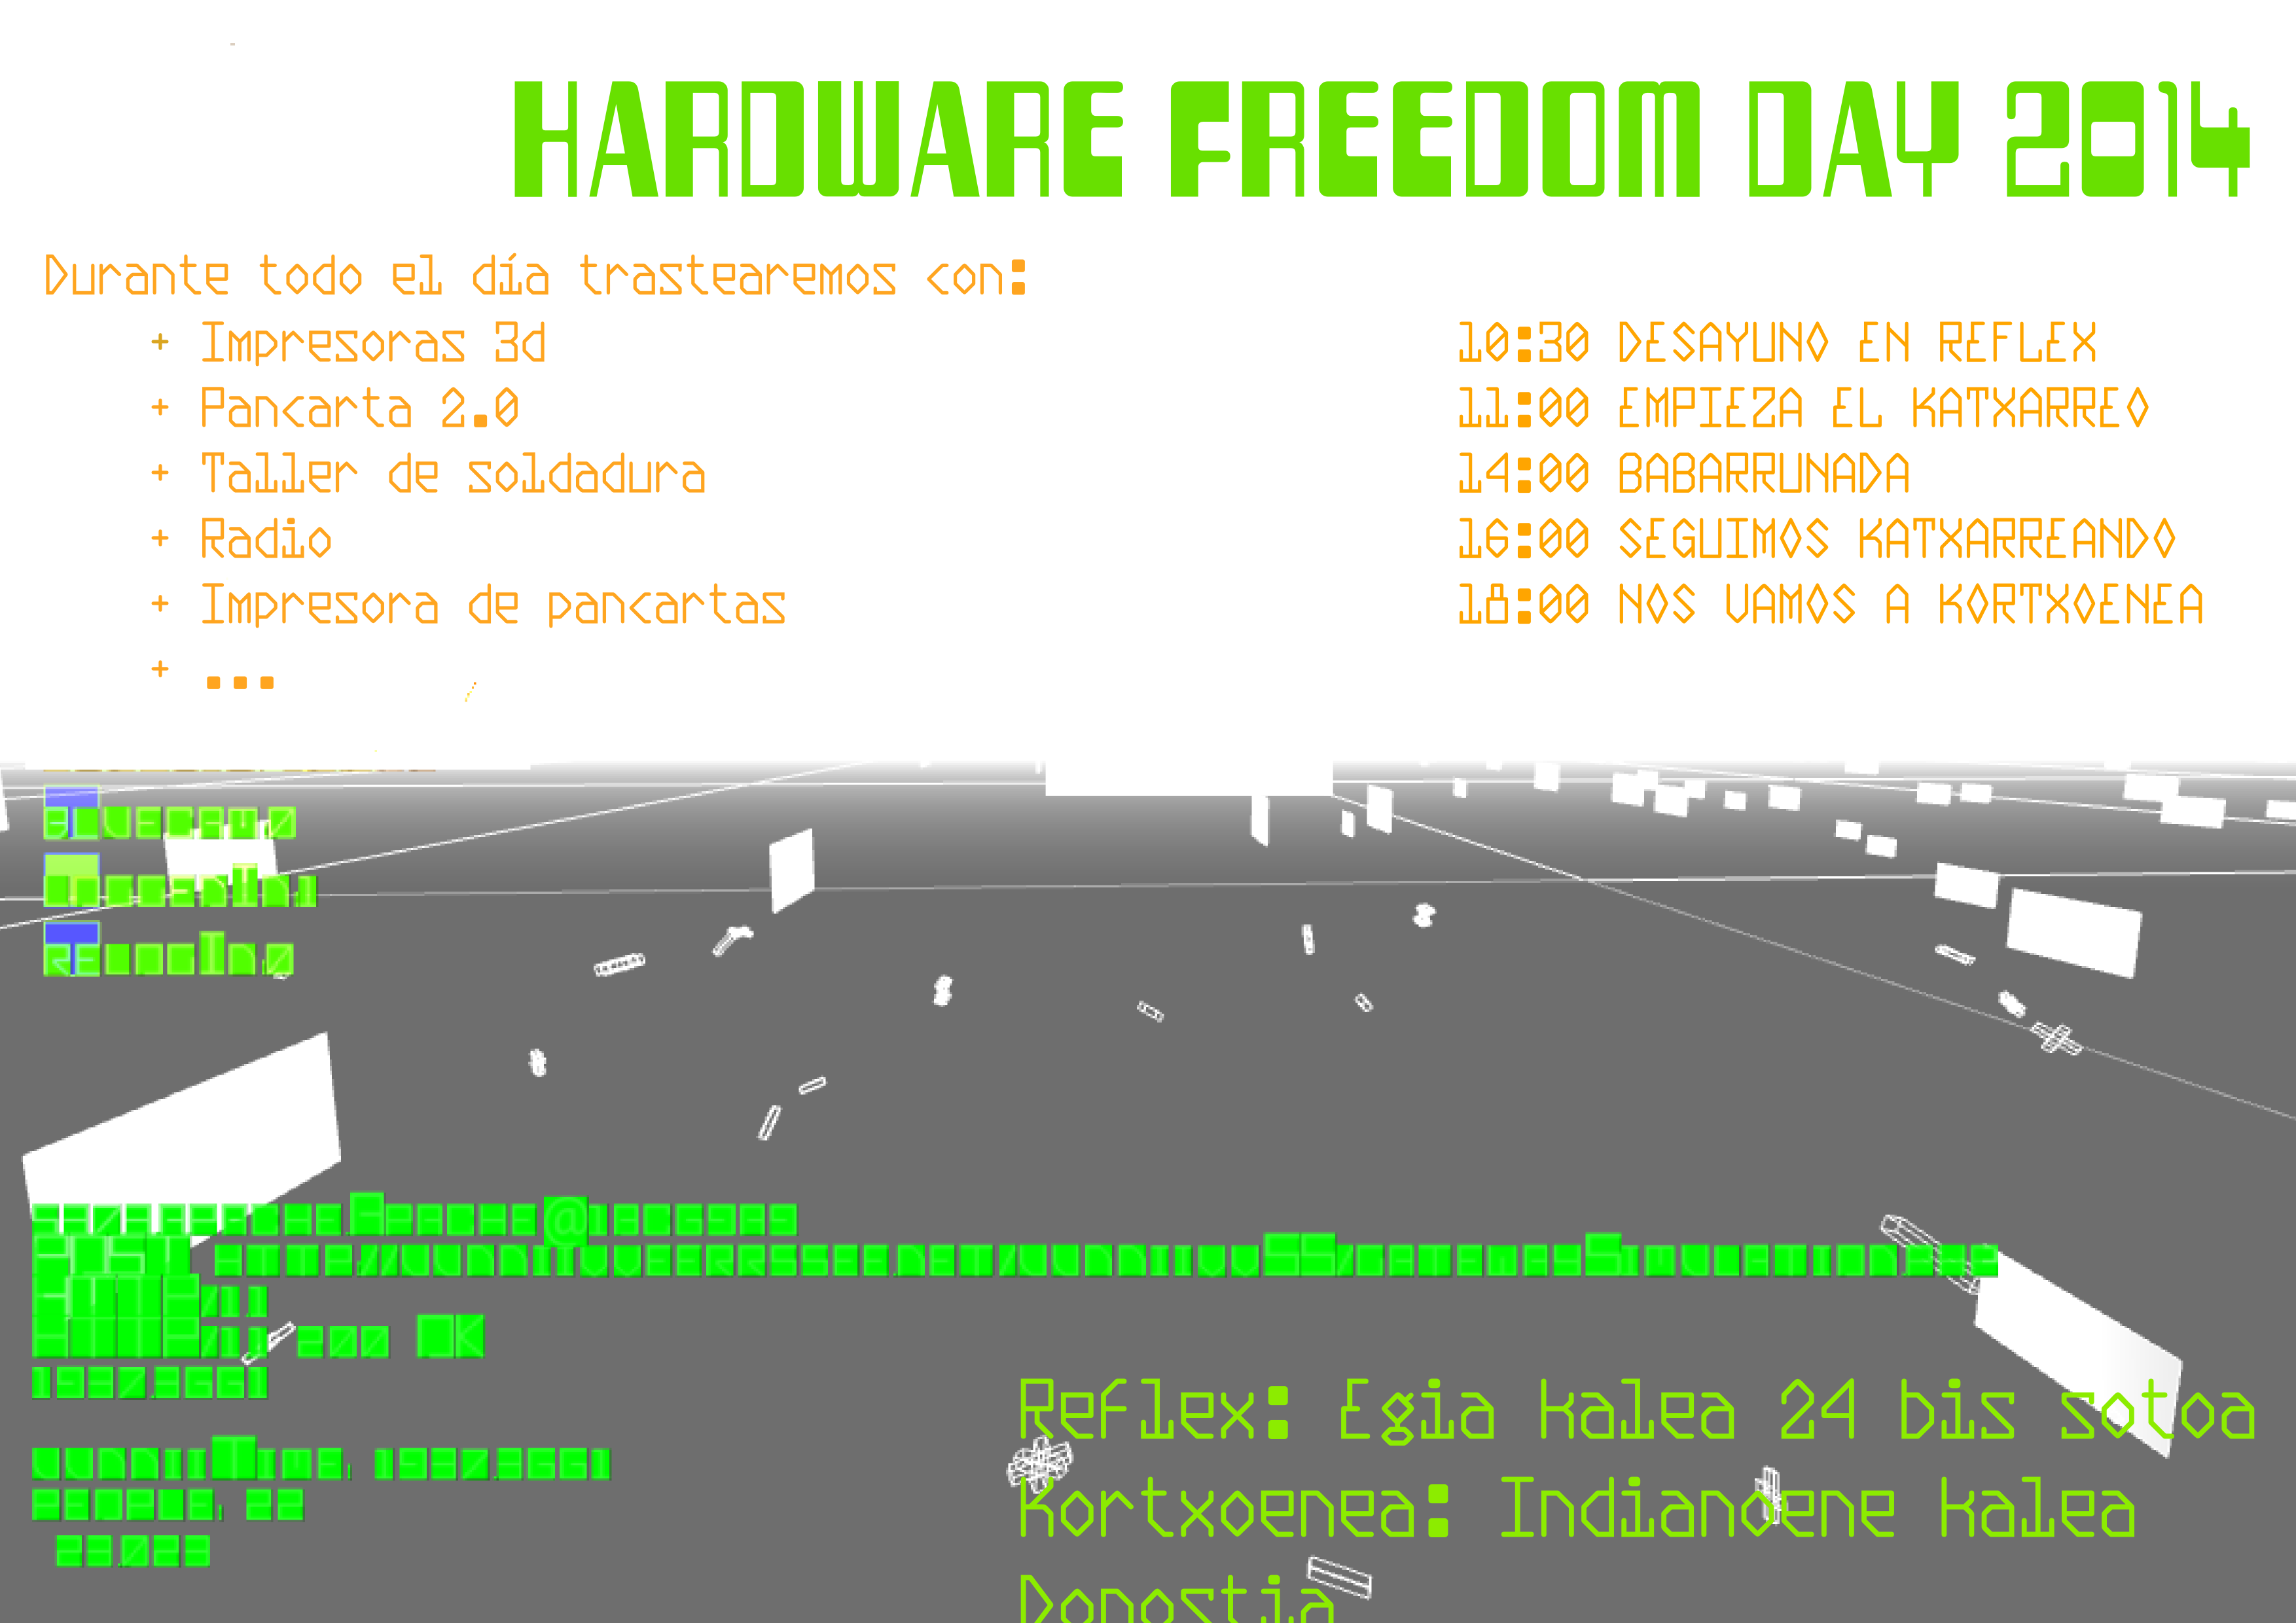 Hardware Freedom Day 2014